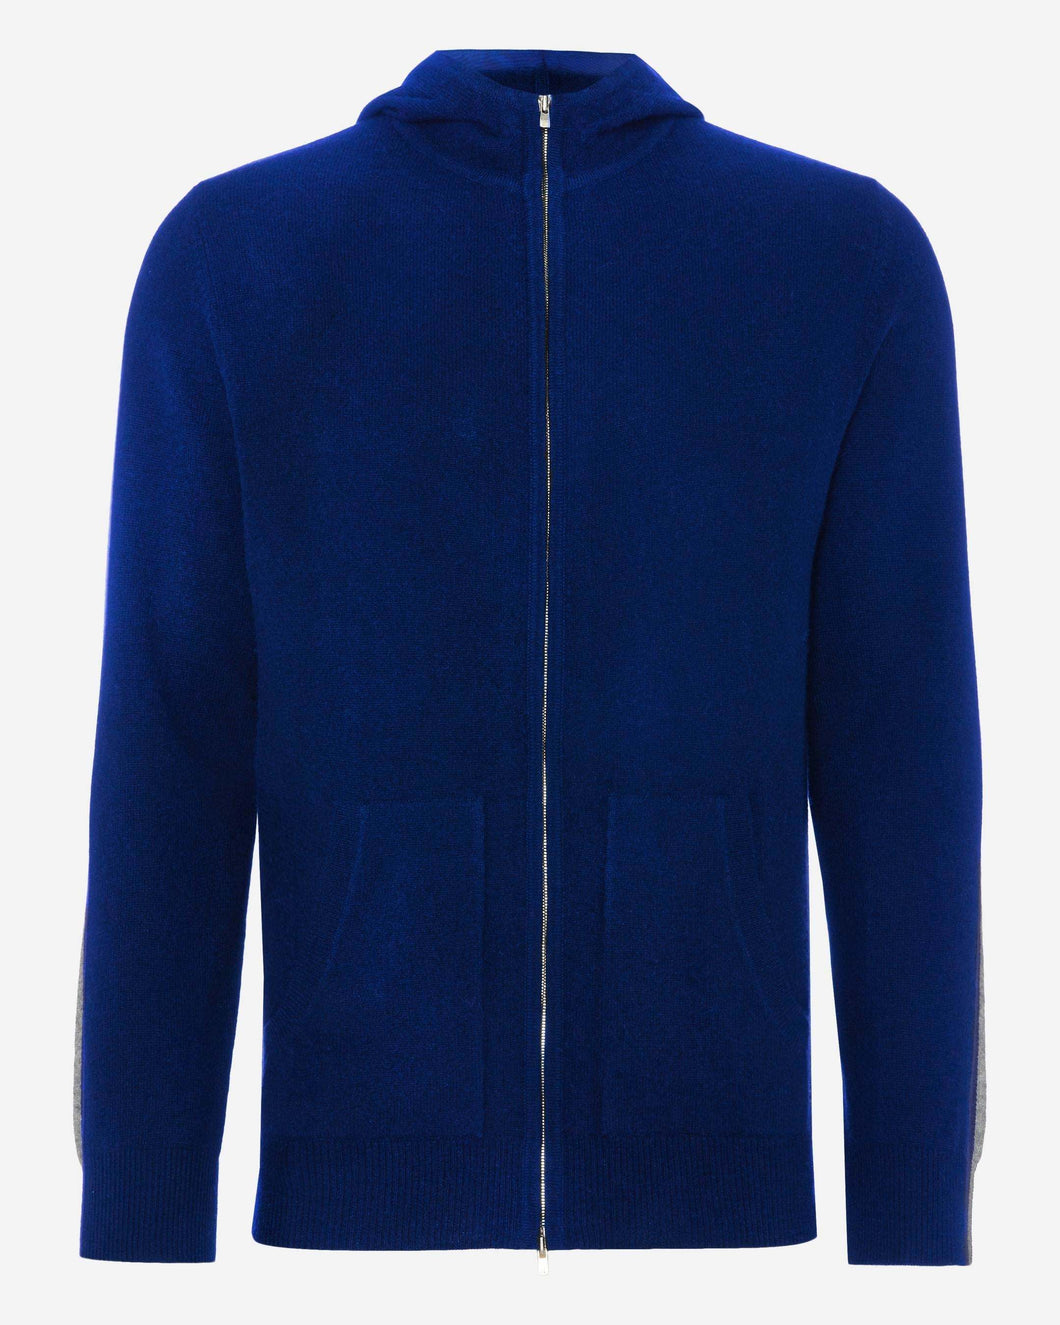 Stripe Detail Cashmere Hoodie Royal Blue + Flannel Grey + Navy Blue